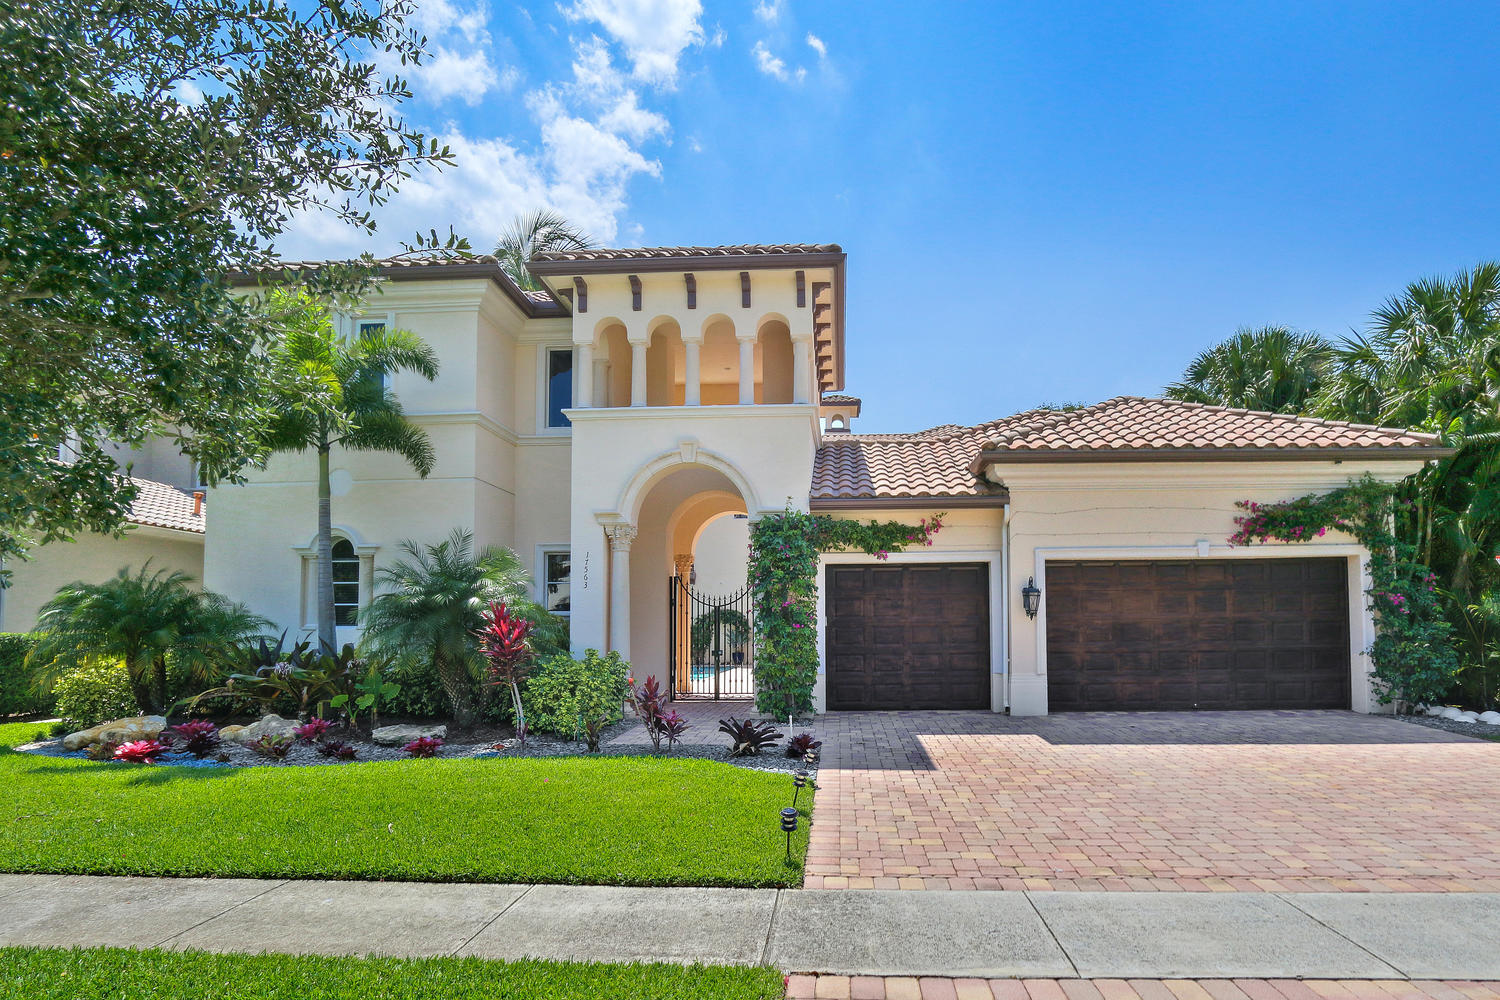 Boca Raton: The Oaks at Boca Raton - listed at 1,095,000 (17563 Middle Lake Dr)